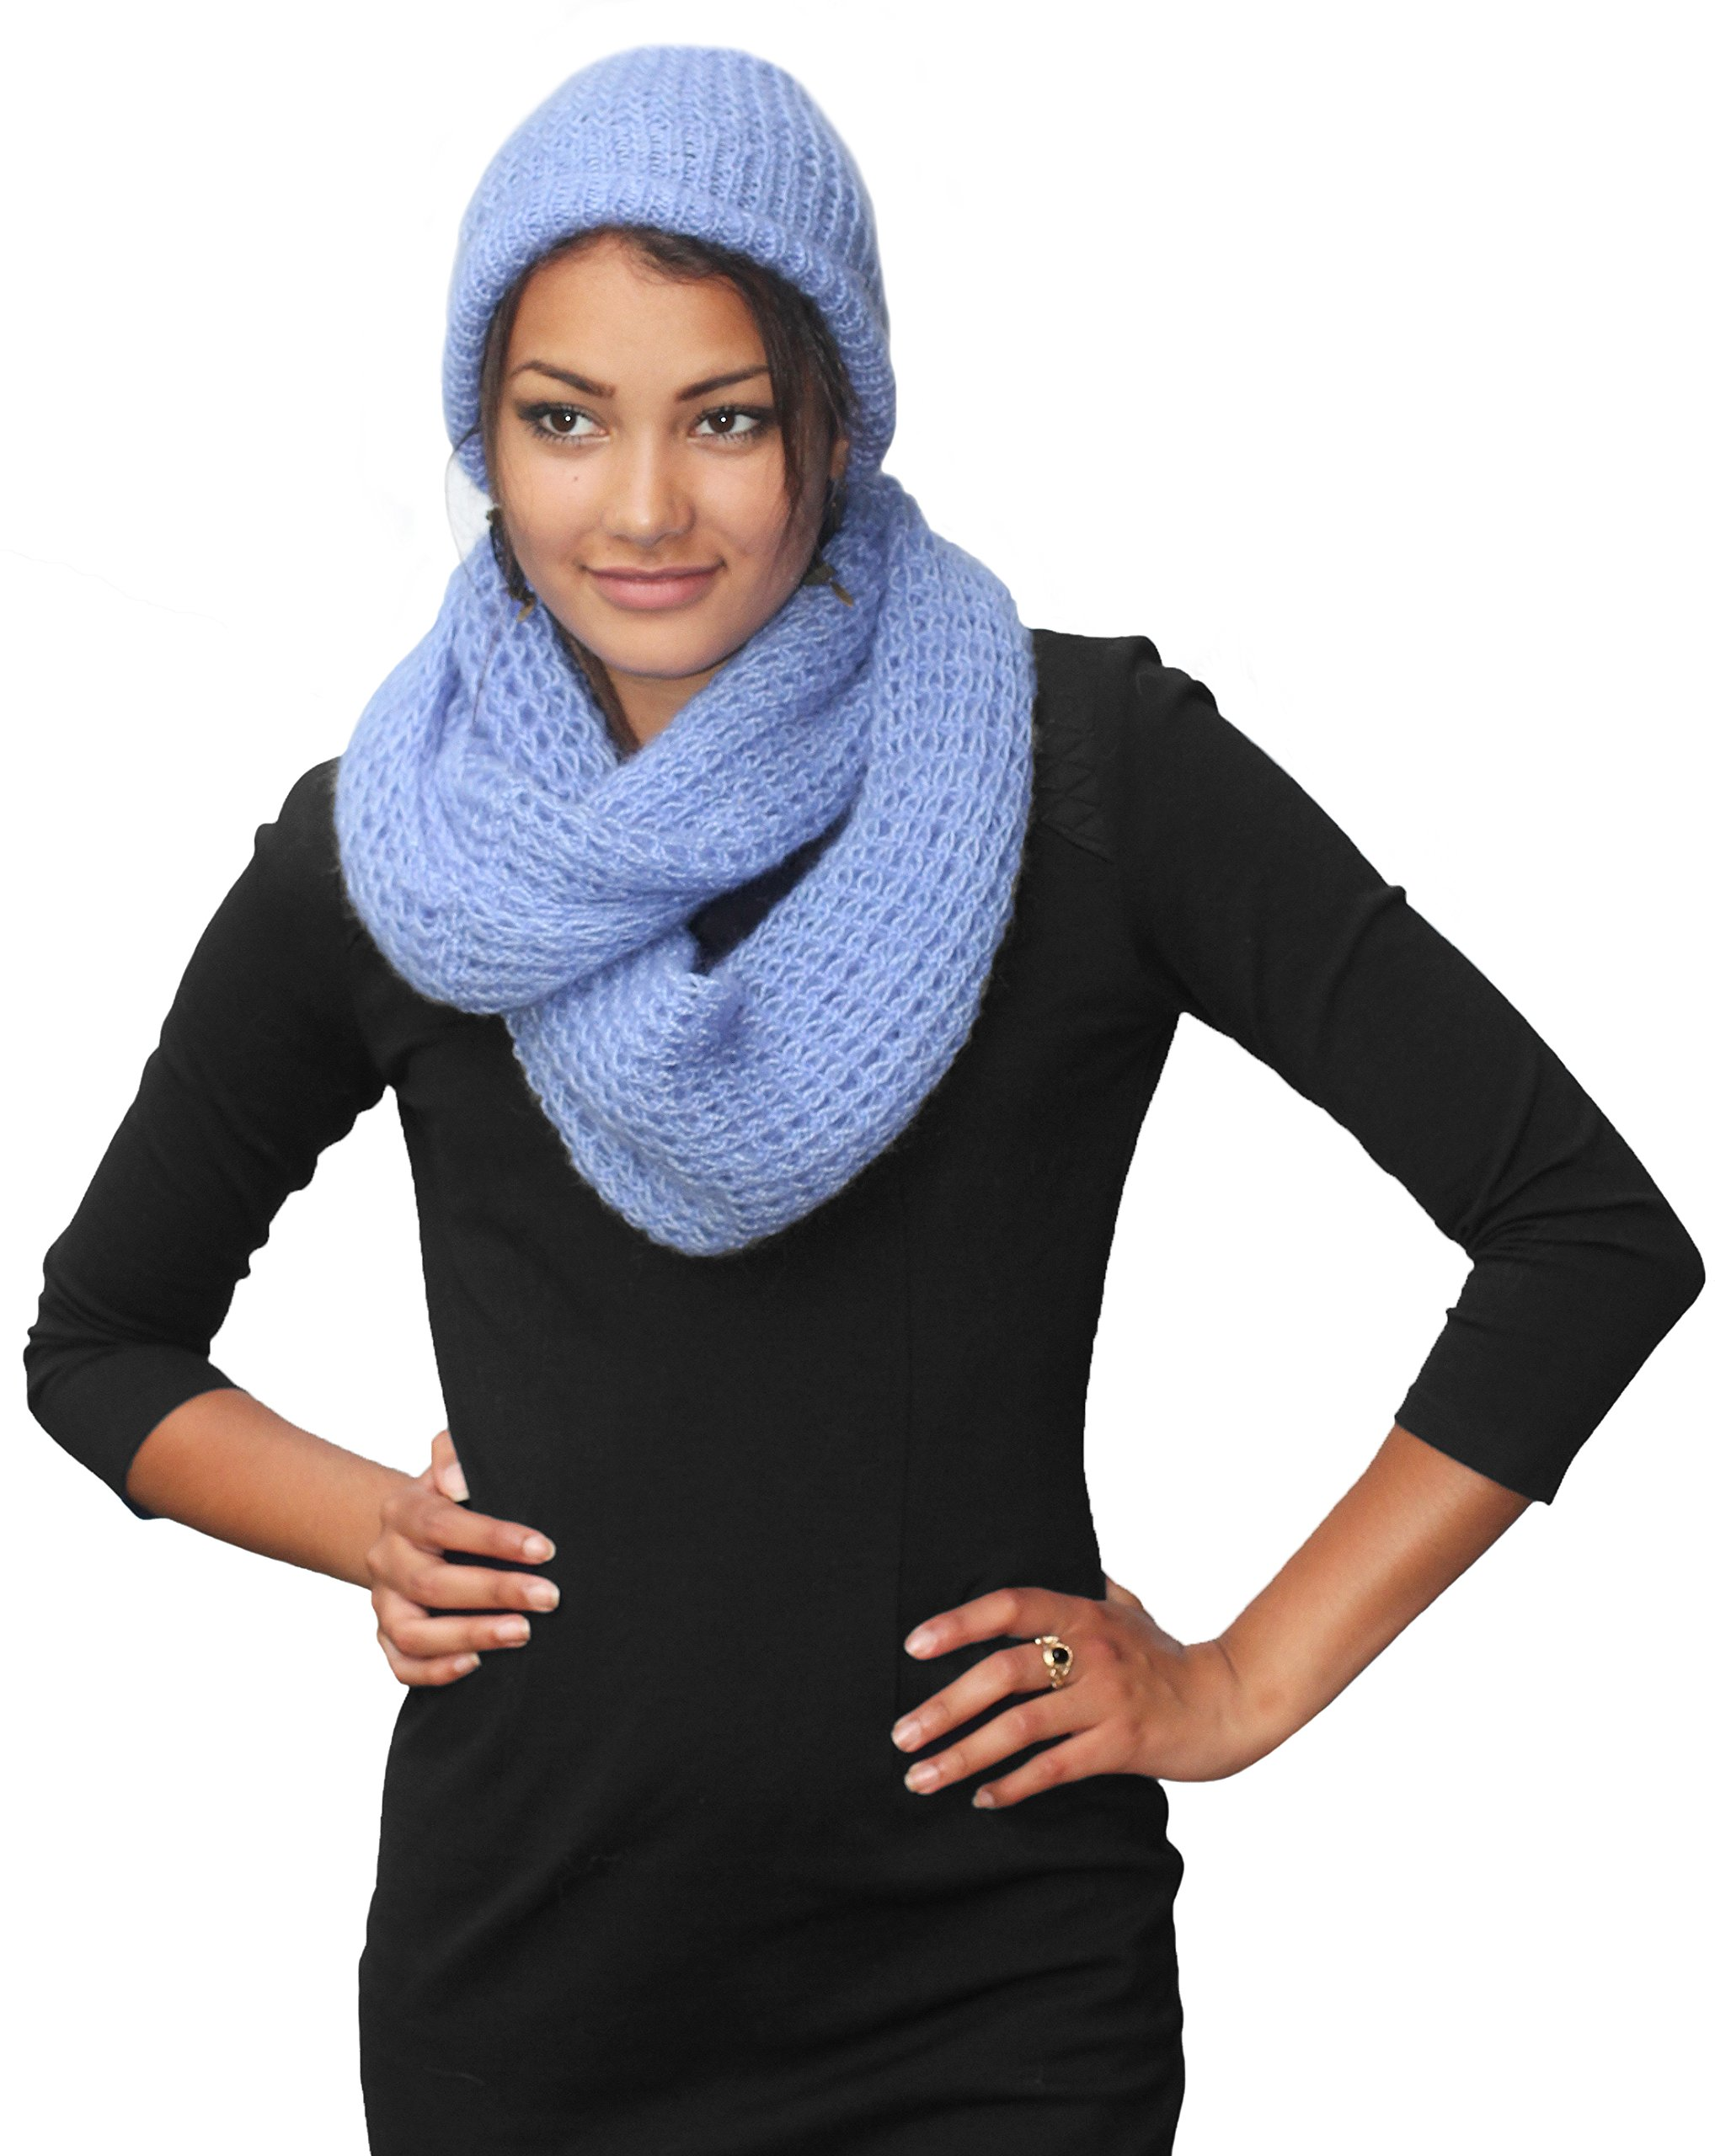 MADE TO ORDER IN ANY COLOR - Knitted PURE ALPACA Scarf and Hat Set - Periwinkle ( by BARBERY Alpaca Accessories